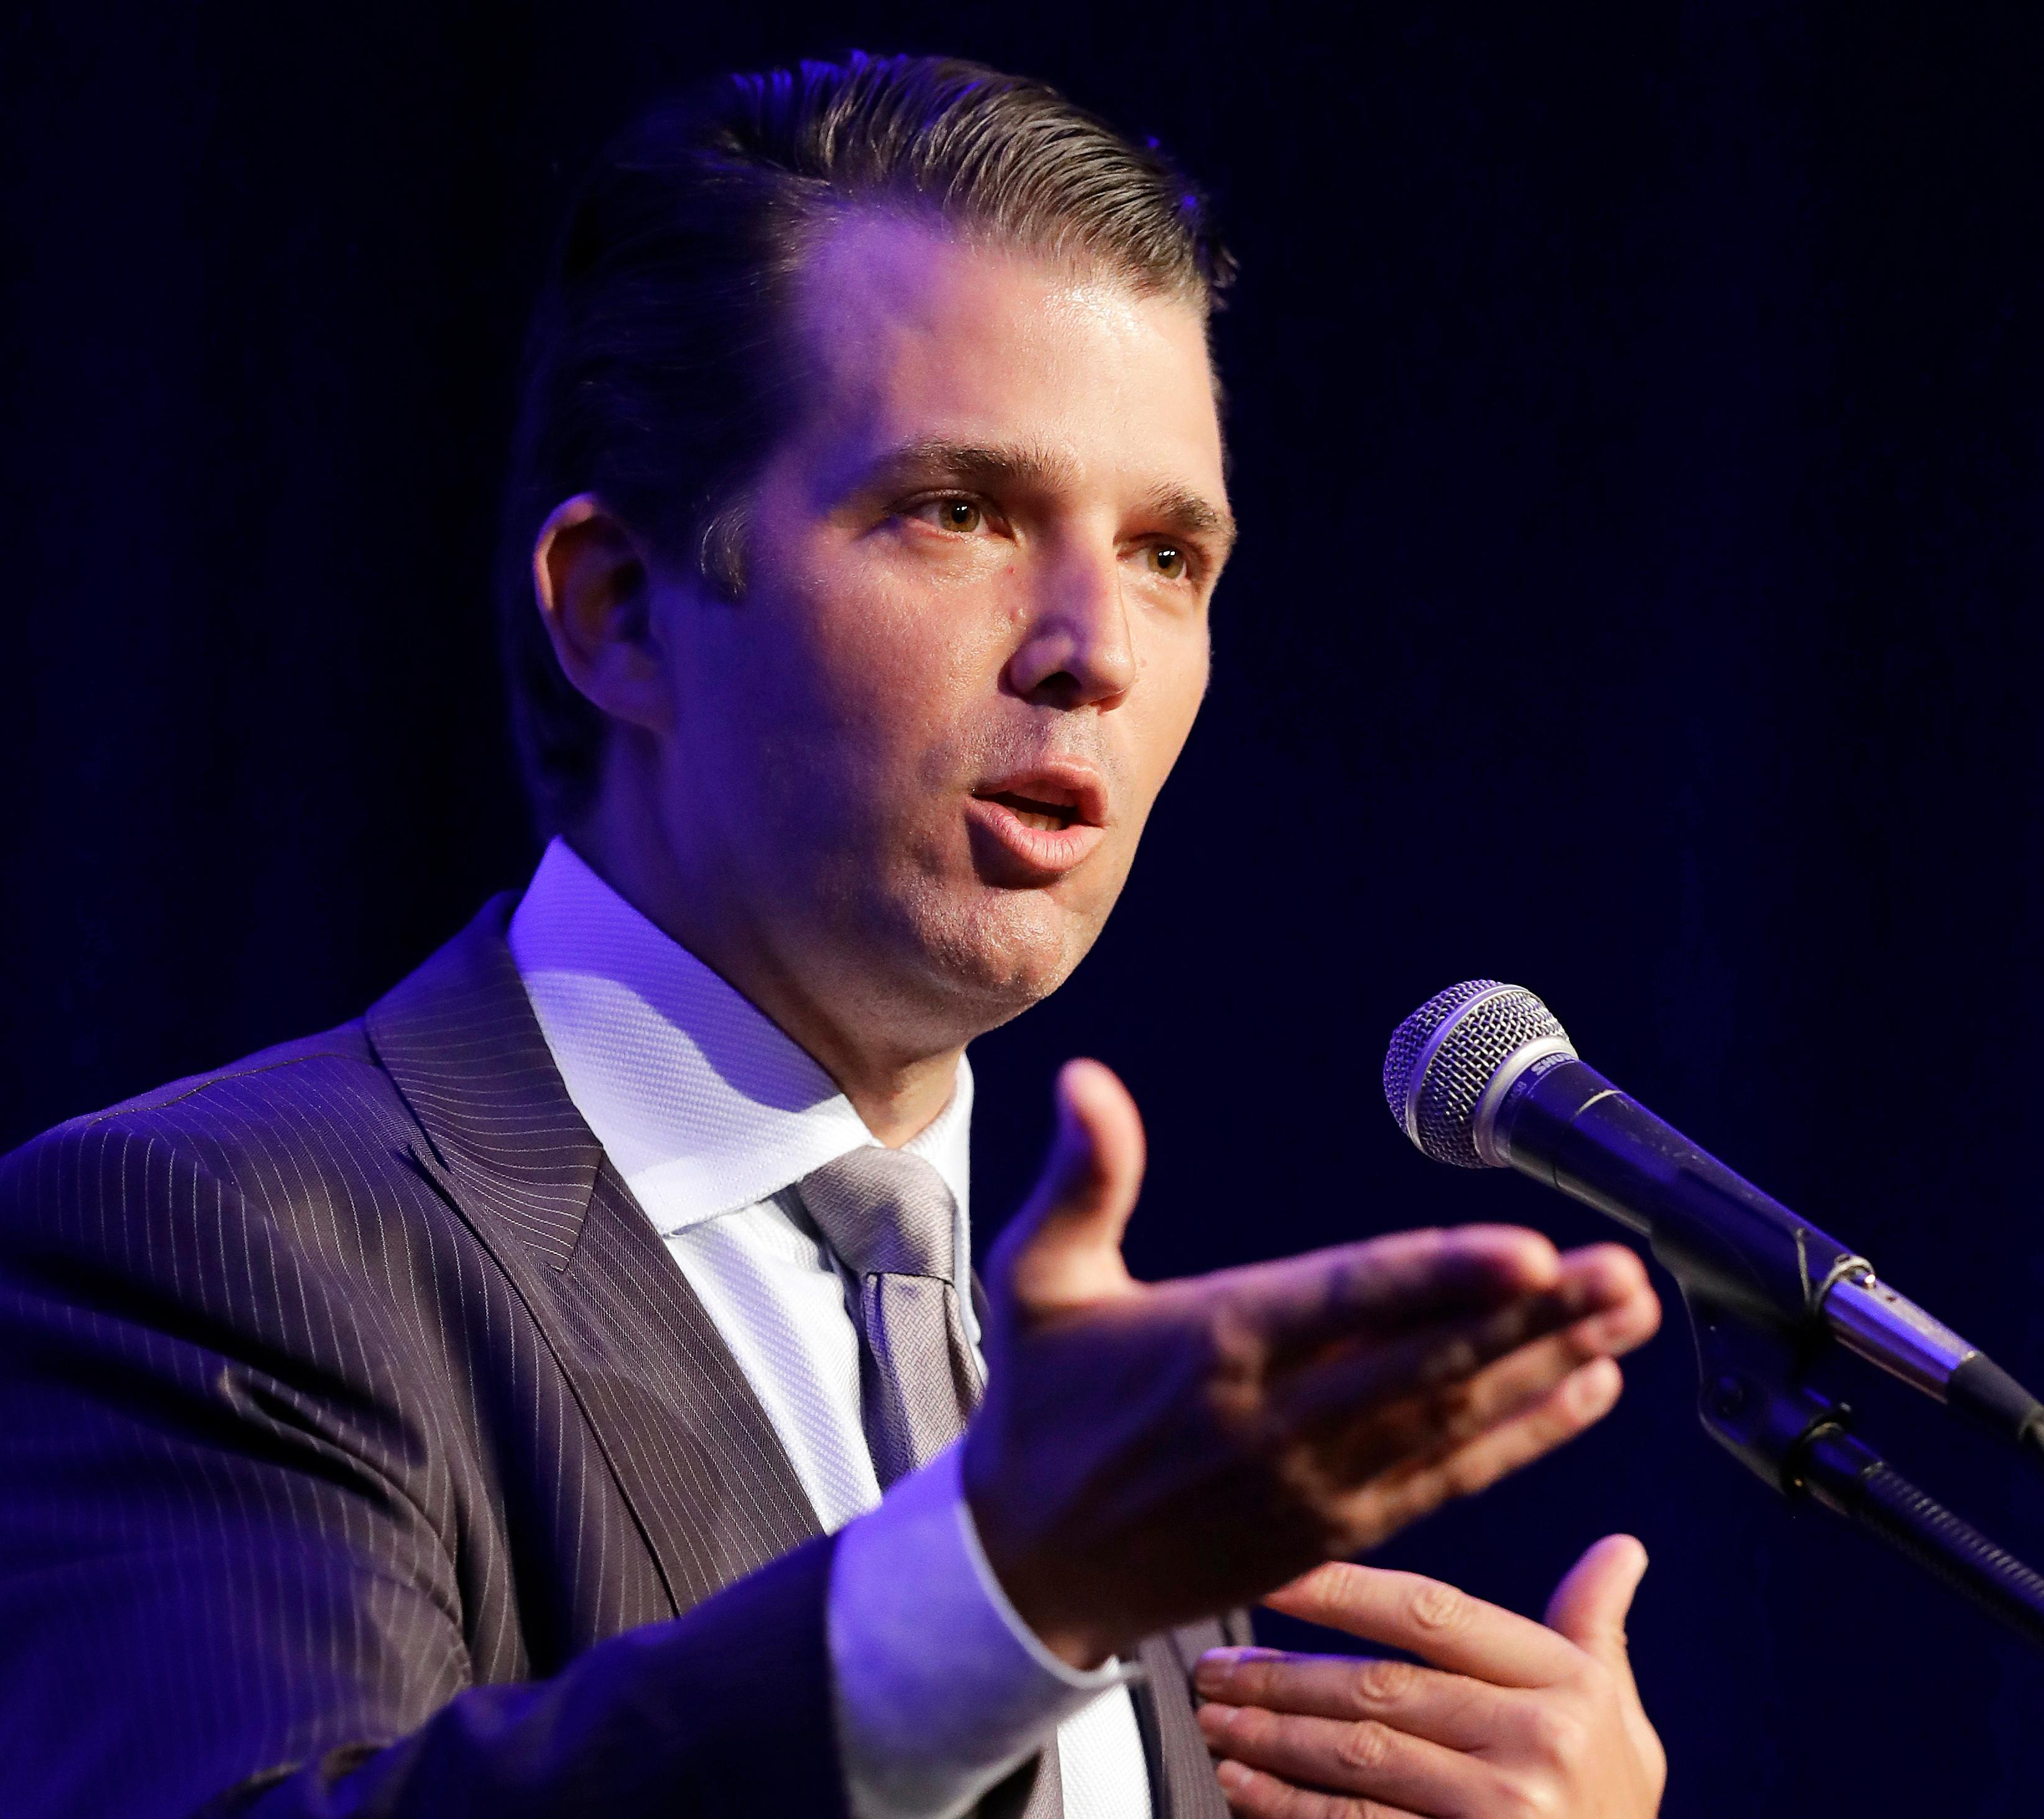 FILE - In this May 8, 2017 file photo, Donald Trump Jr. speaks in Indianapolis. President Donald Trump's eldest son acknowledged Monday, July 10, 2017, that he met a Russian lawyer during the 2016 presidential campaign to hear information about his father's Democratic opponent, Hillary Clinton. (AP Photo/Darron Cummings, File)